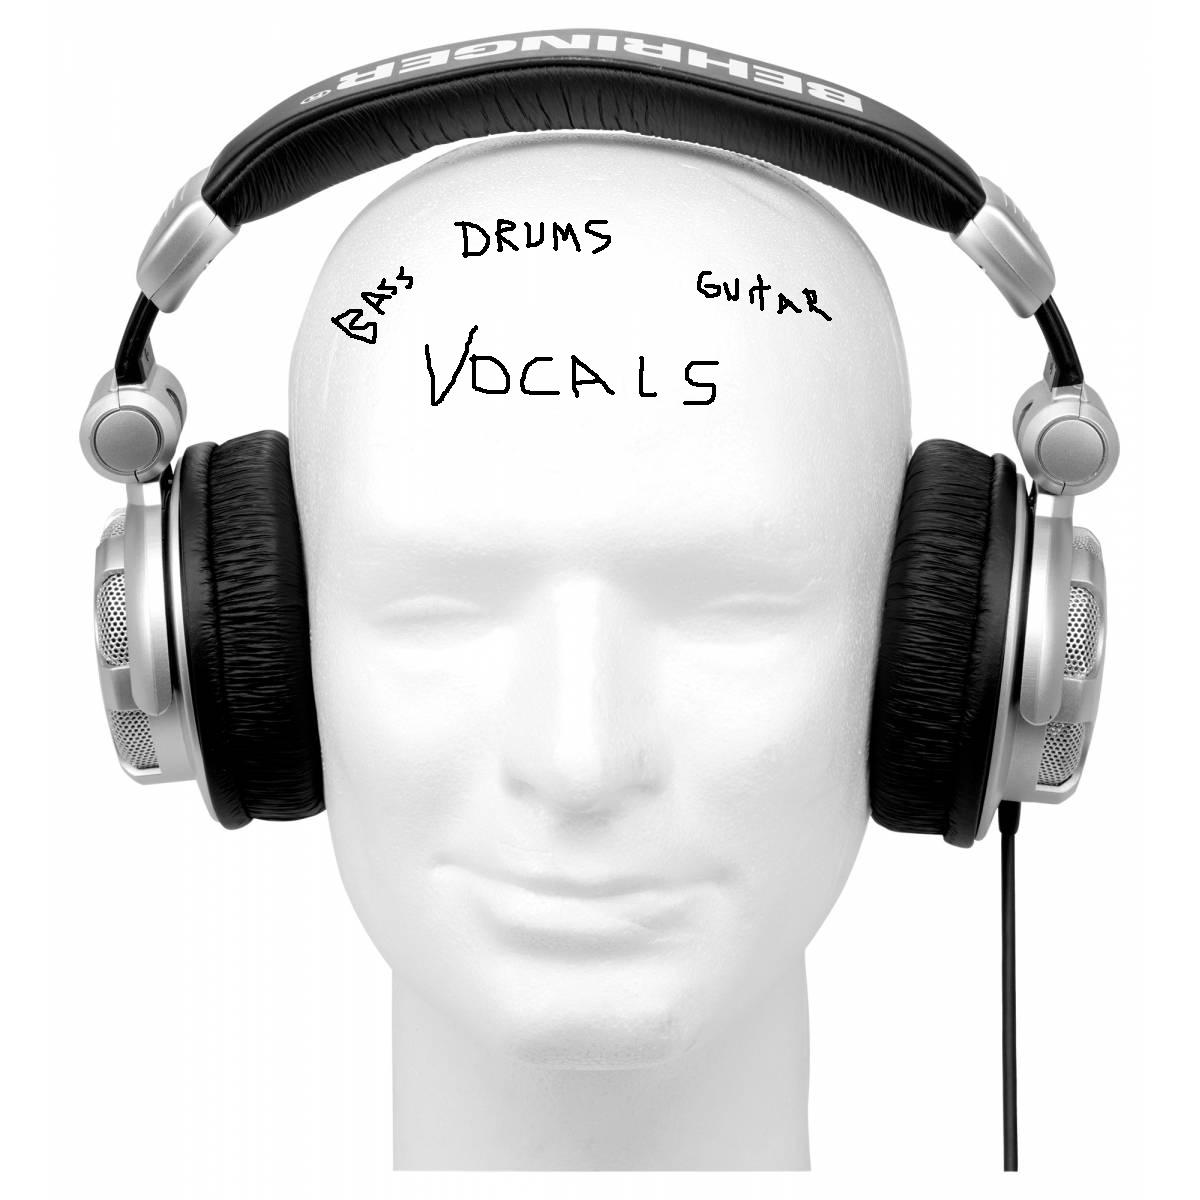 When you listen to music, do you enjoy it without analyzing it and